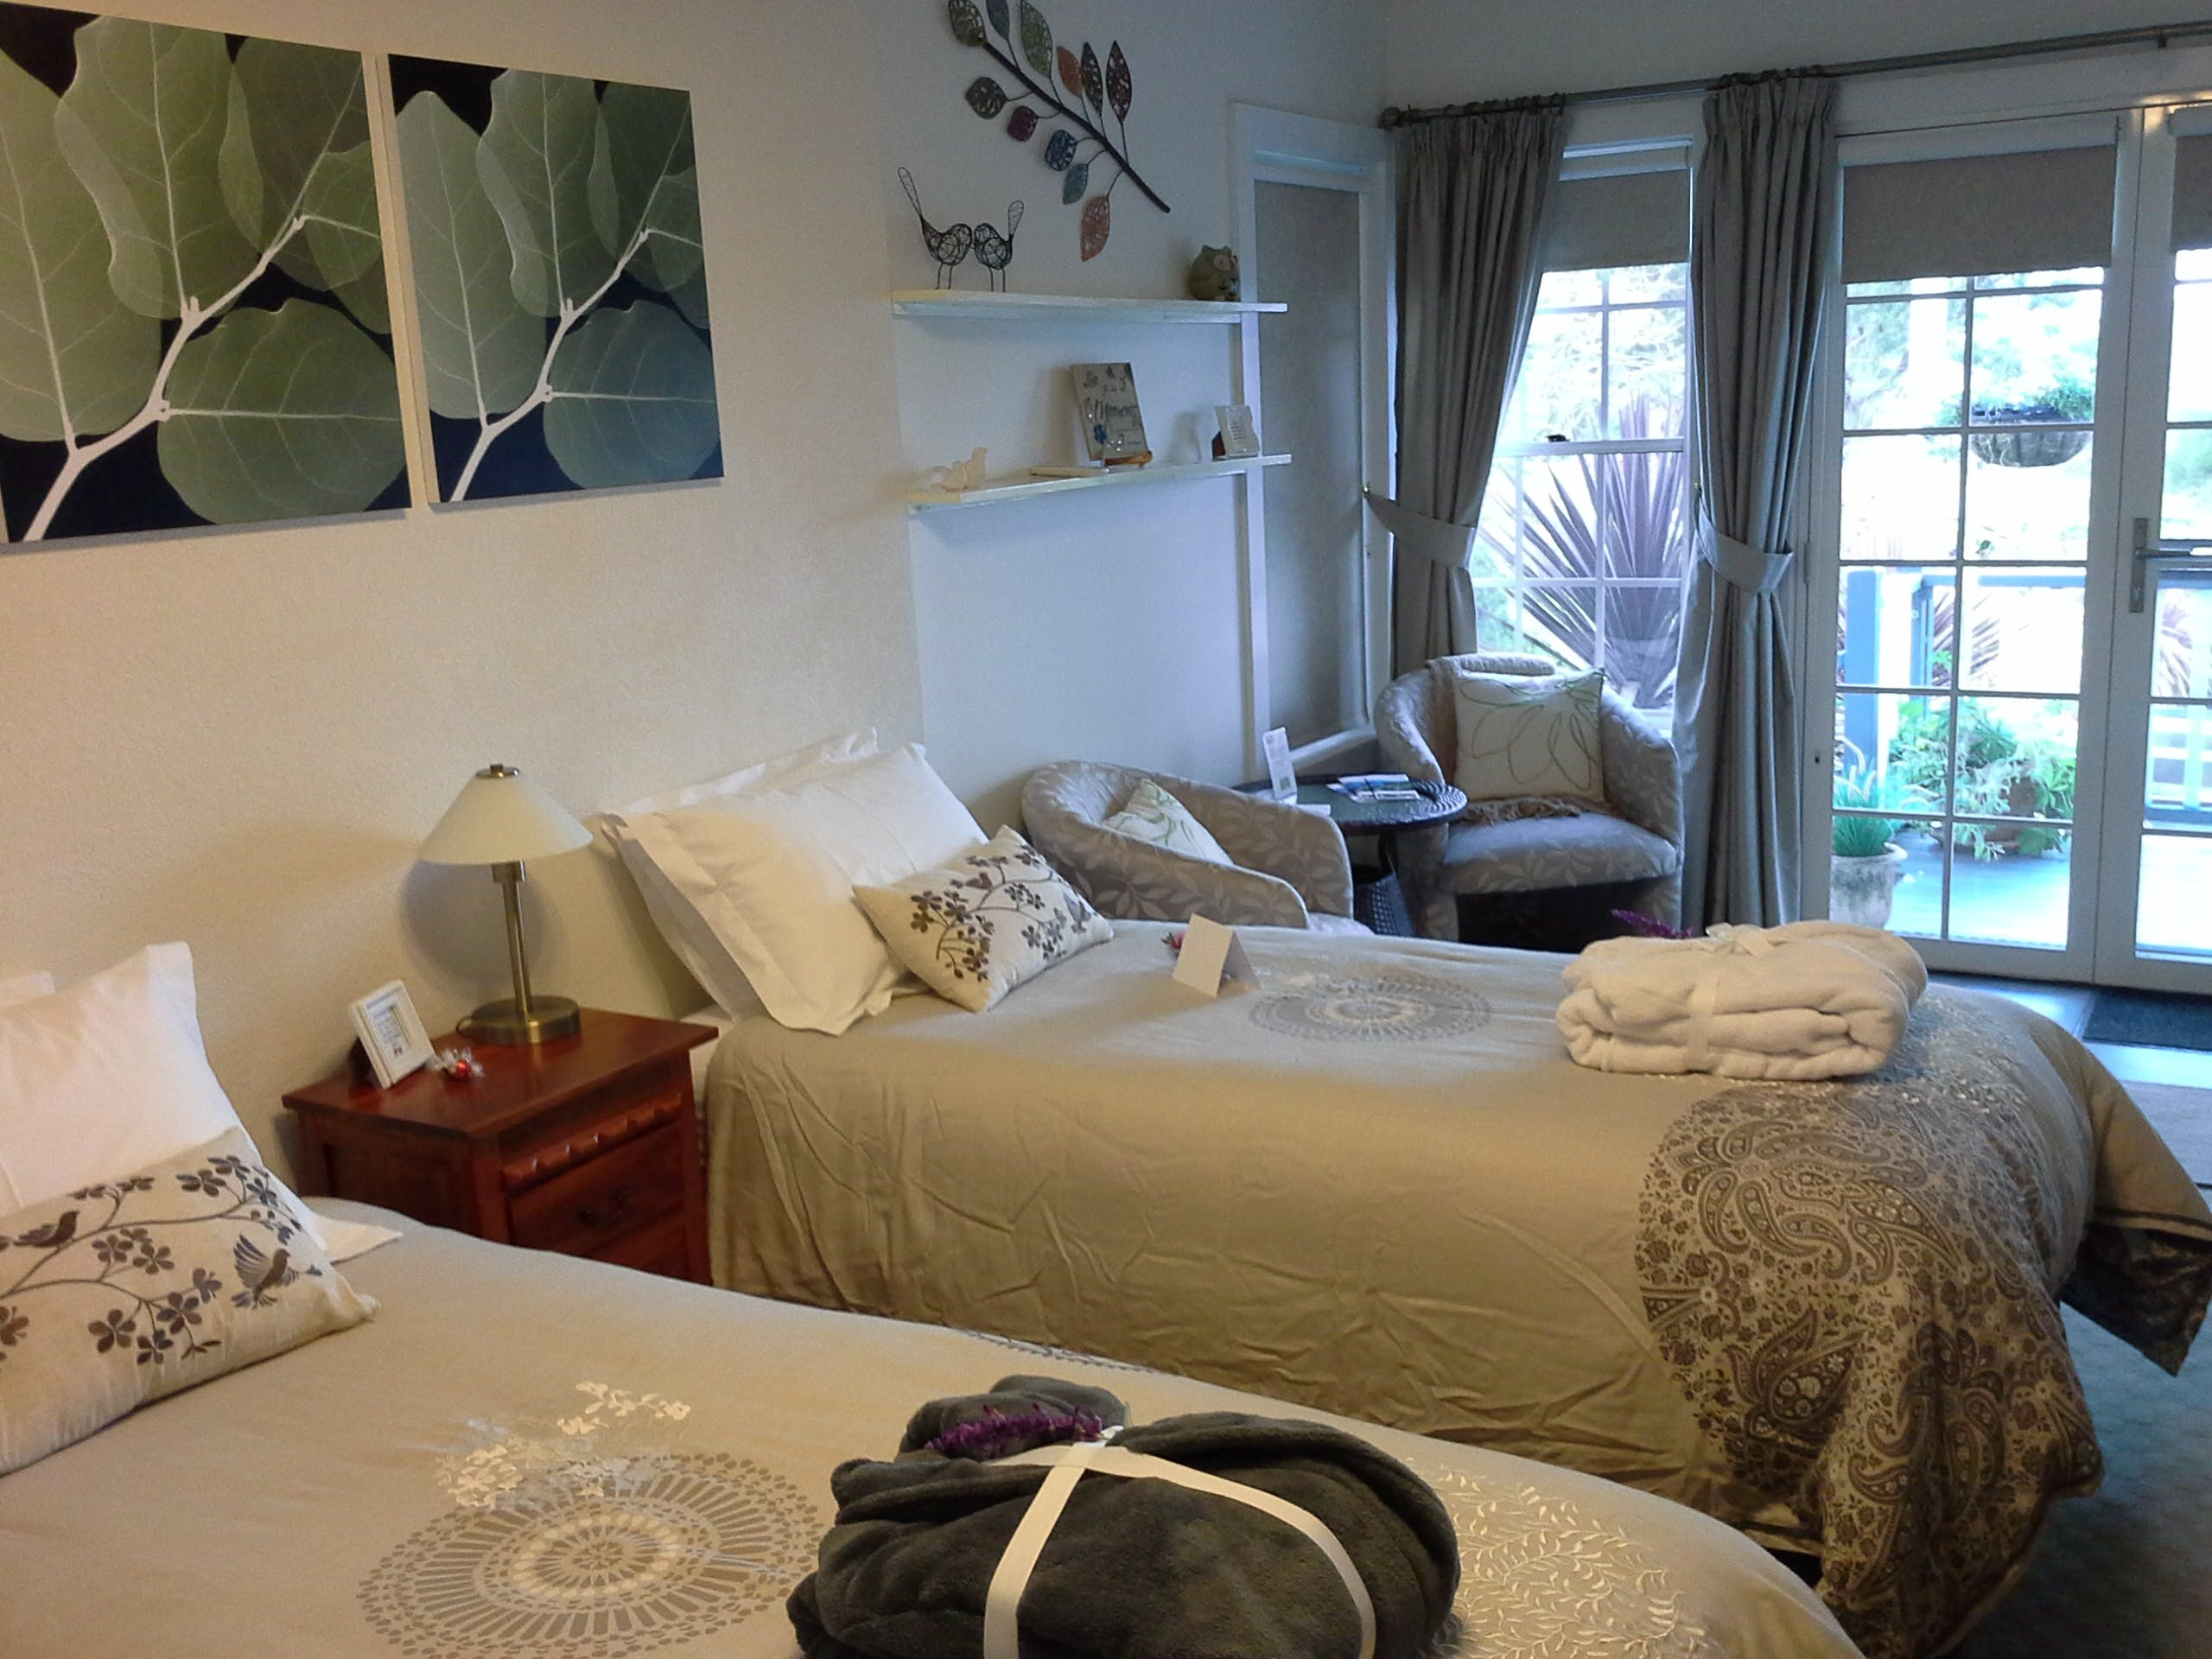 Terrace Room Twin Configuration hillsidebedandbreakfasthuonvalley.com